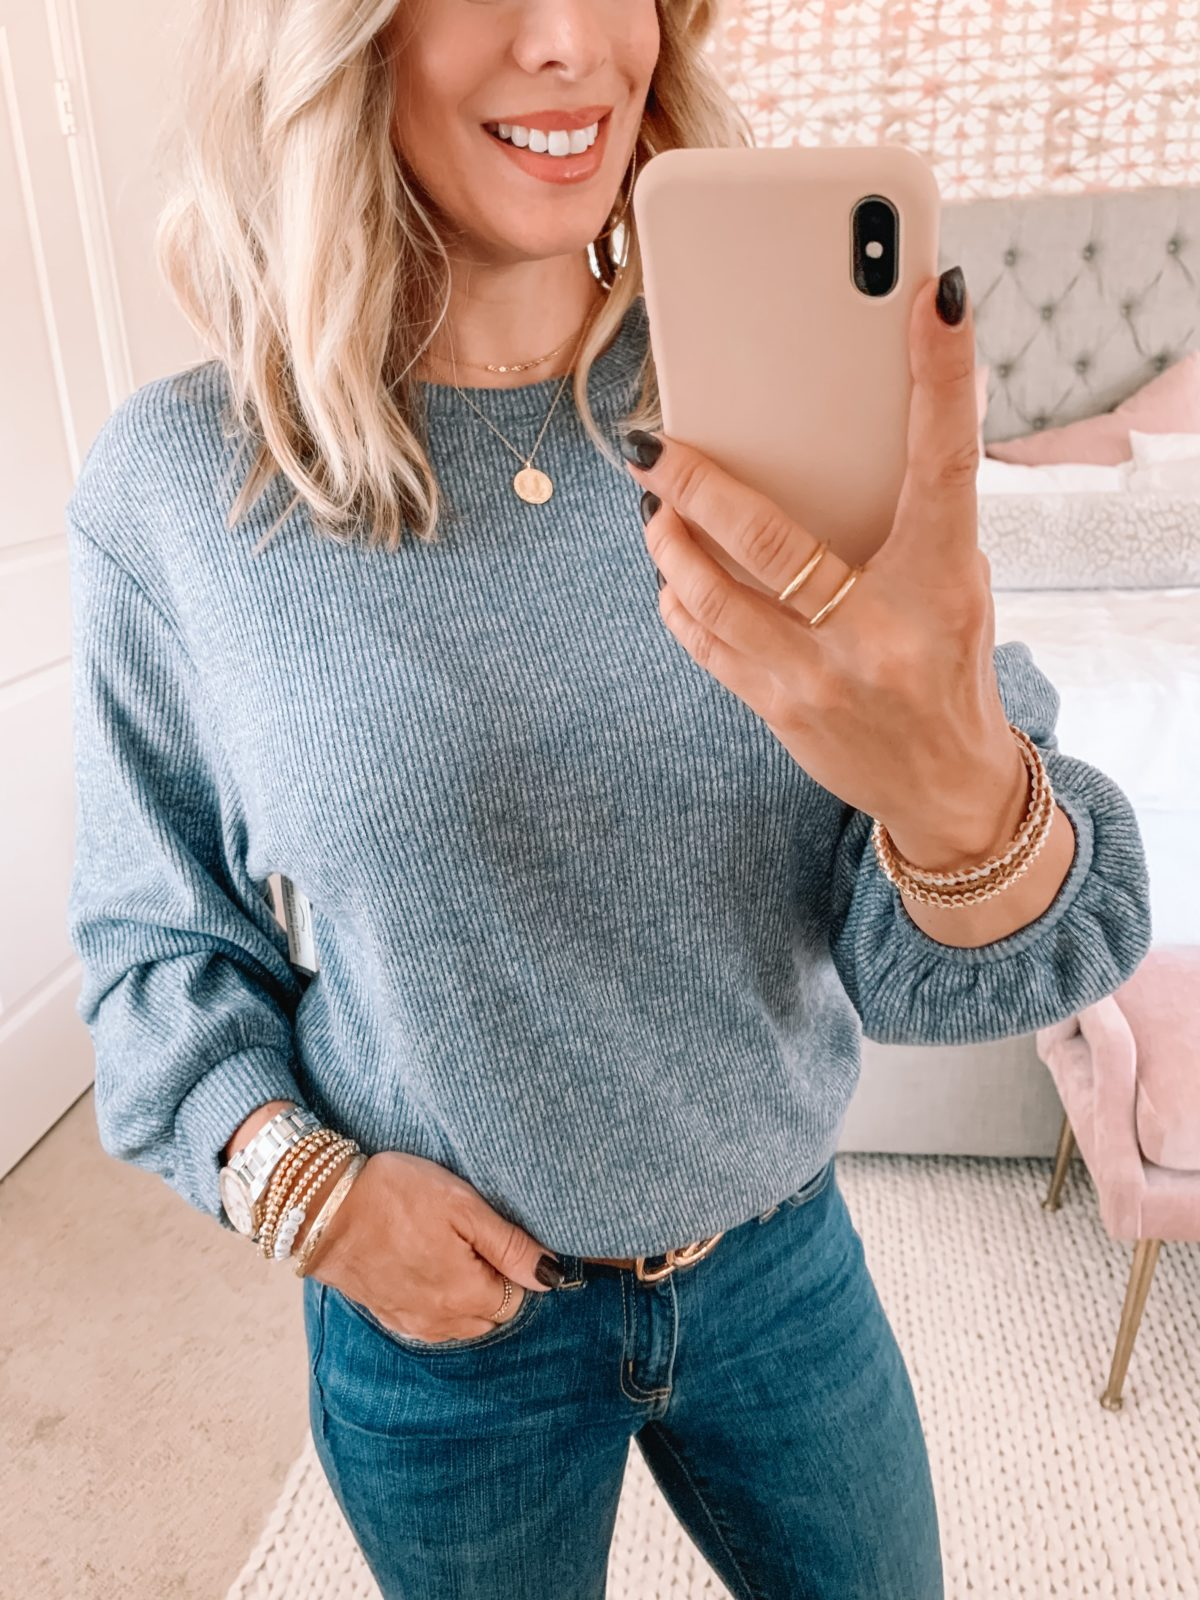 Amazon Fashion Faves, Blue Puff Sleeve Sweater, Jeans